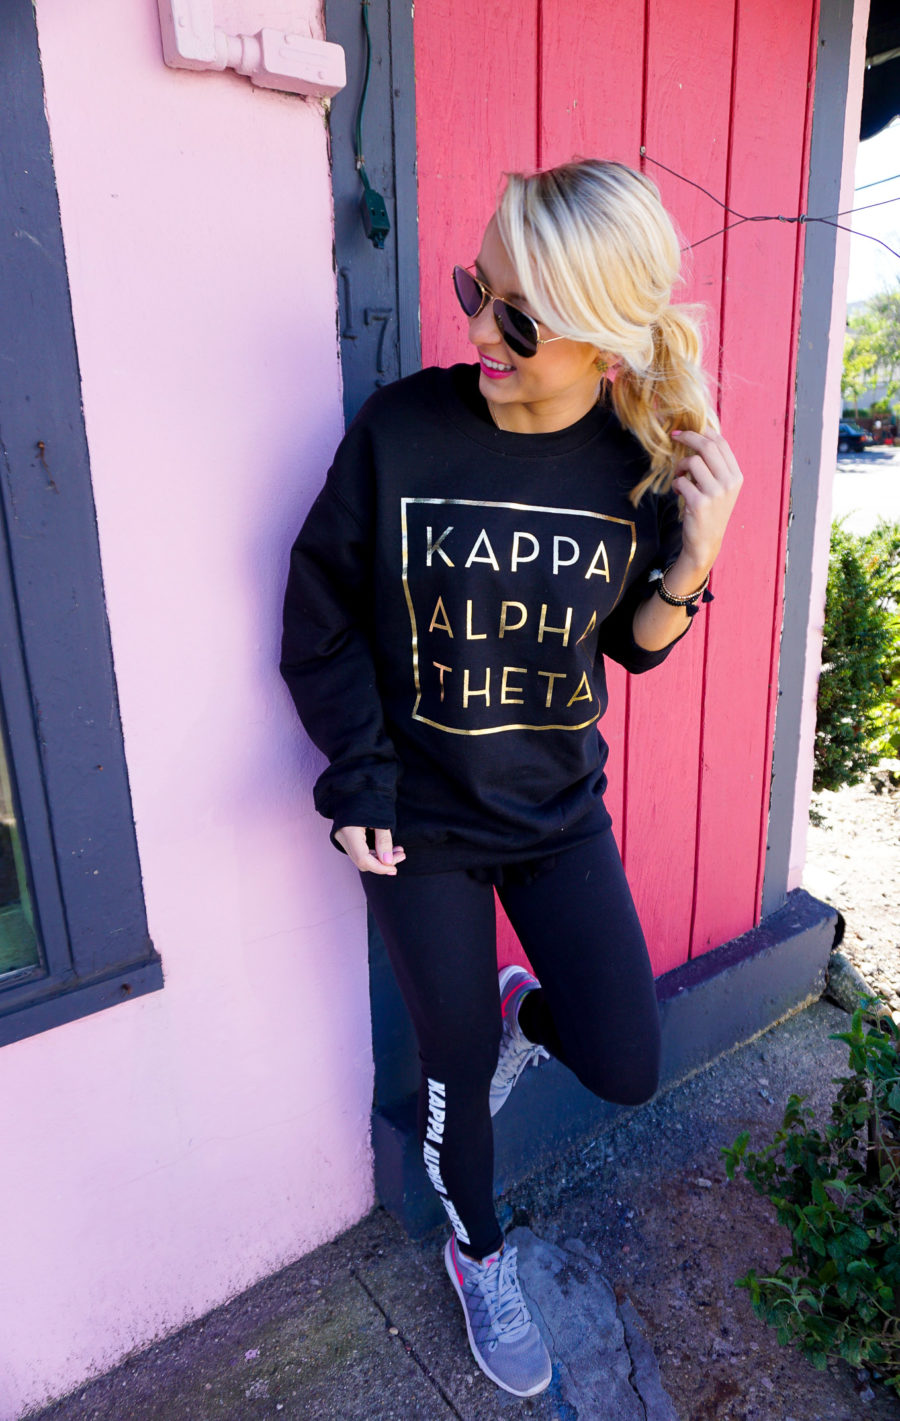 amy-littleson-from-i-believe-in-pink-wearing-kappa-alpha-theta-sorority-apparel-with-university-tees_-10